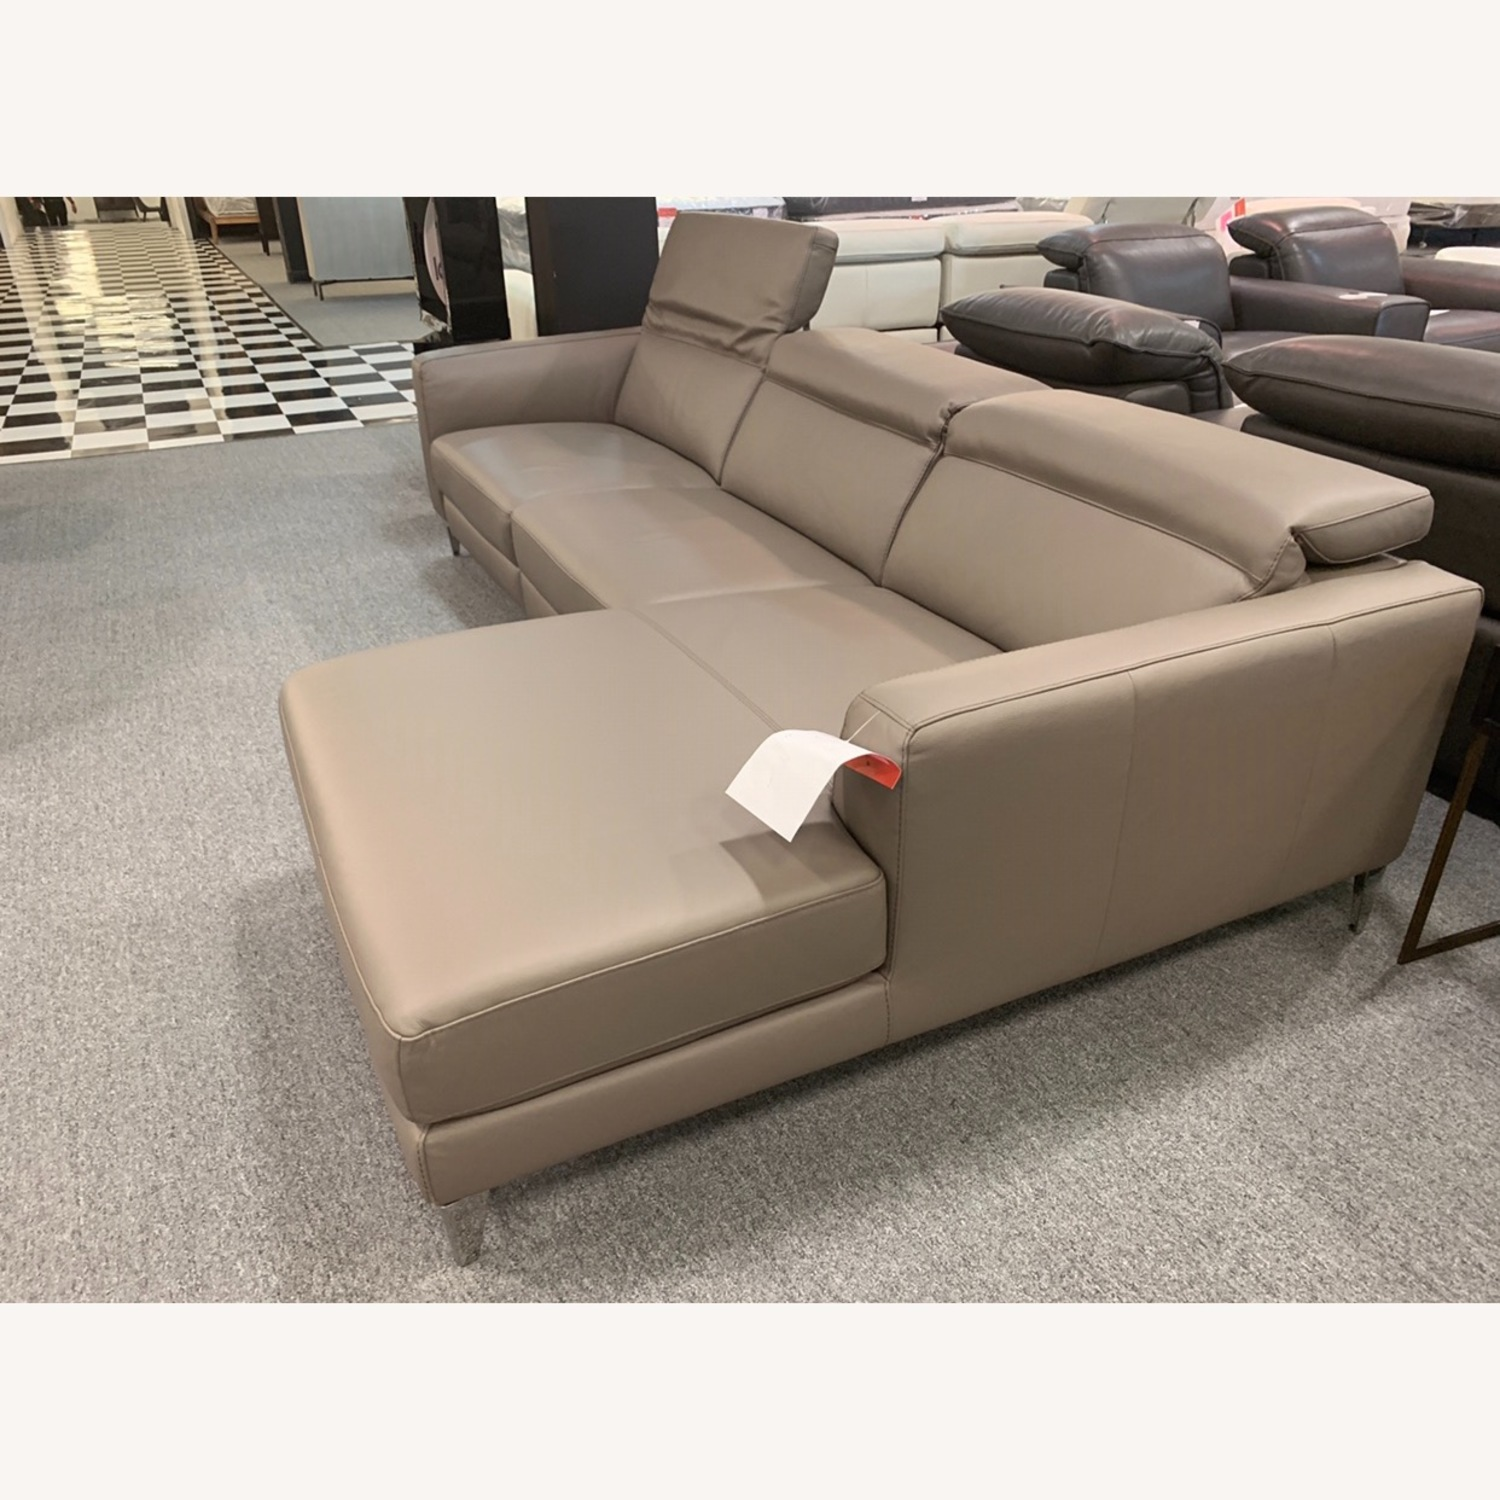 Nicoletti Vincent Leather Sectional Sofa - image-4